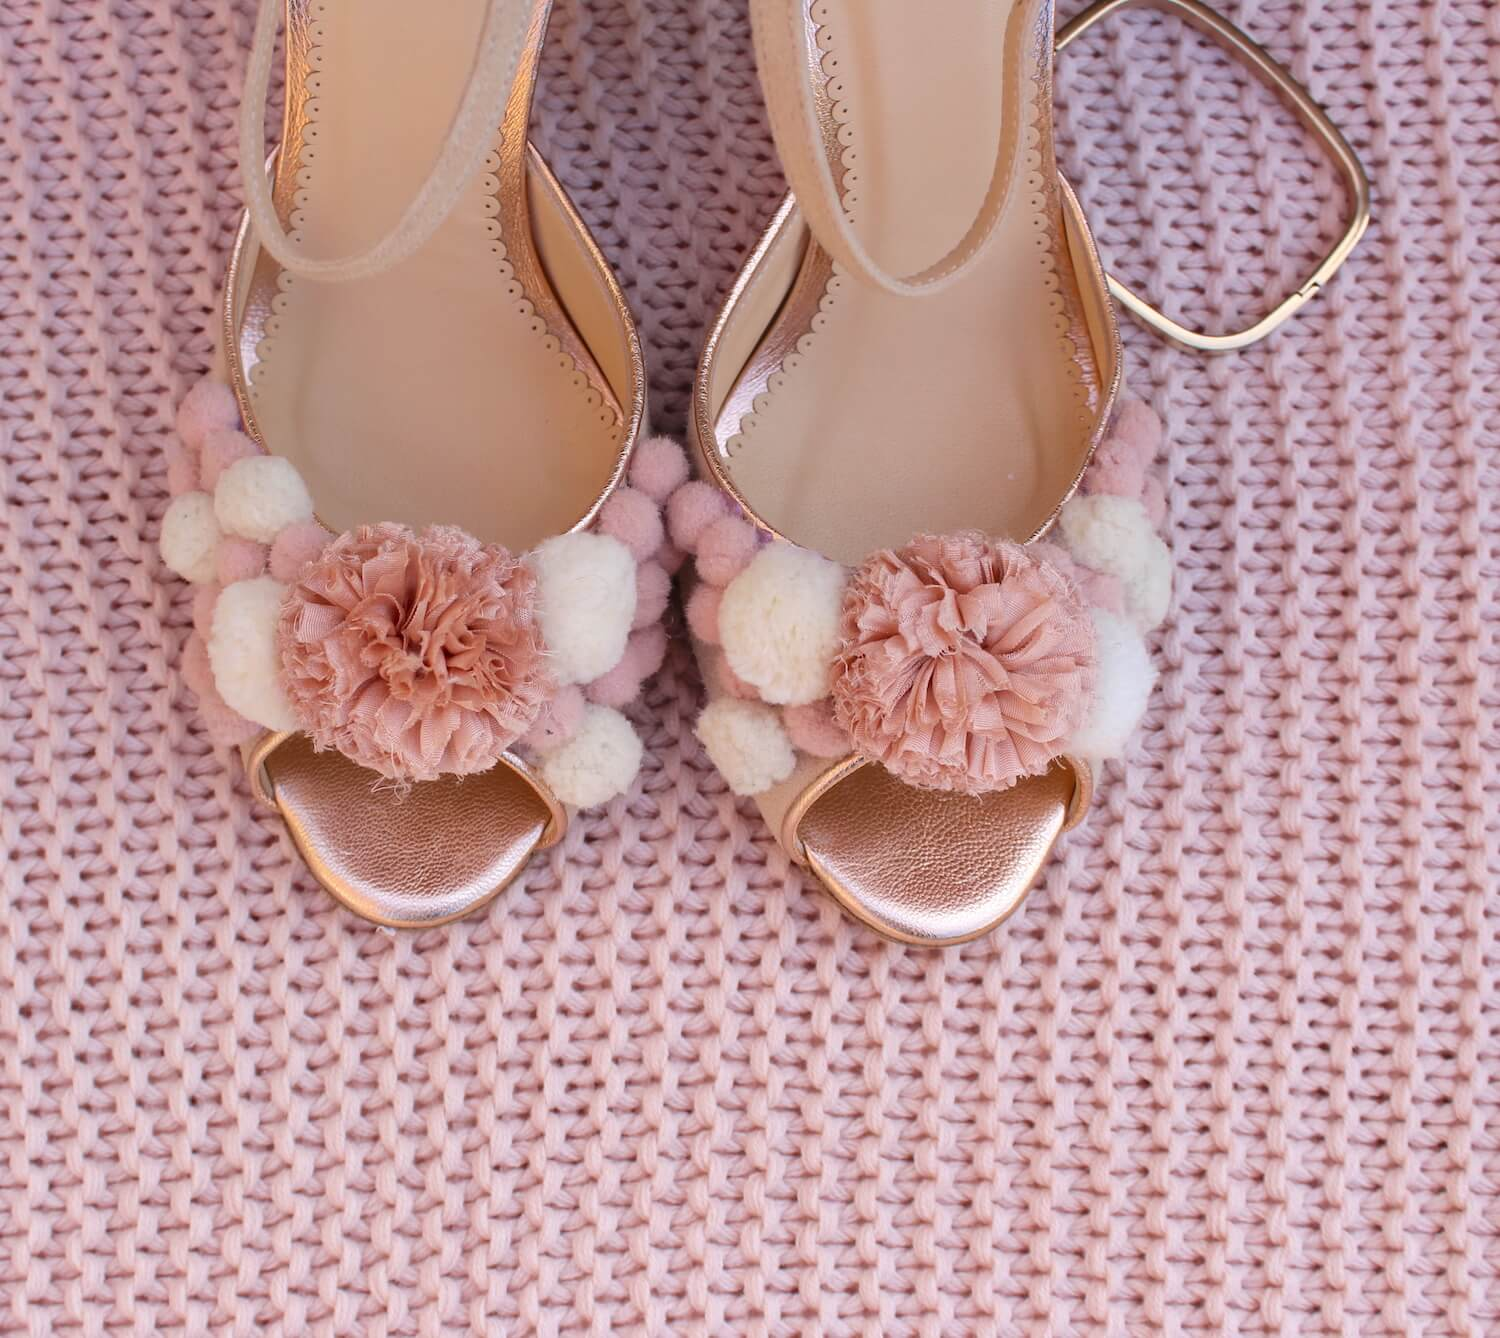 pink and gold peep toe sandals with pom pom embellishment